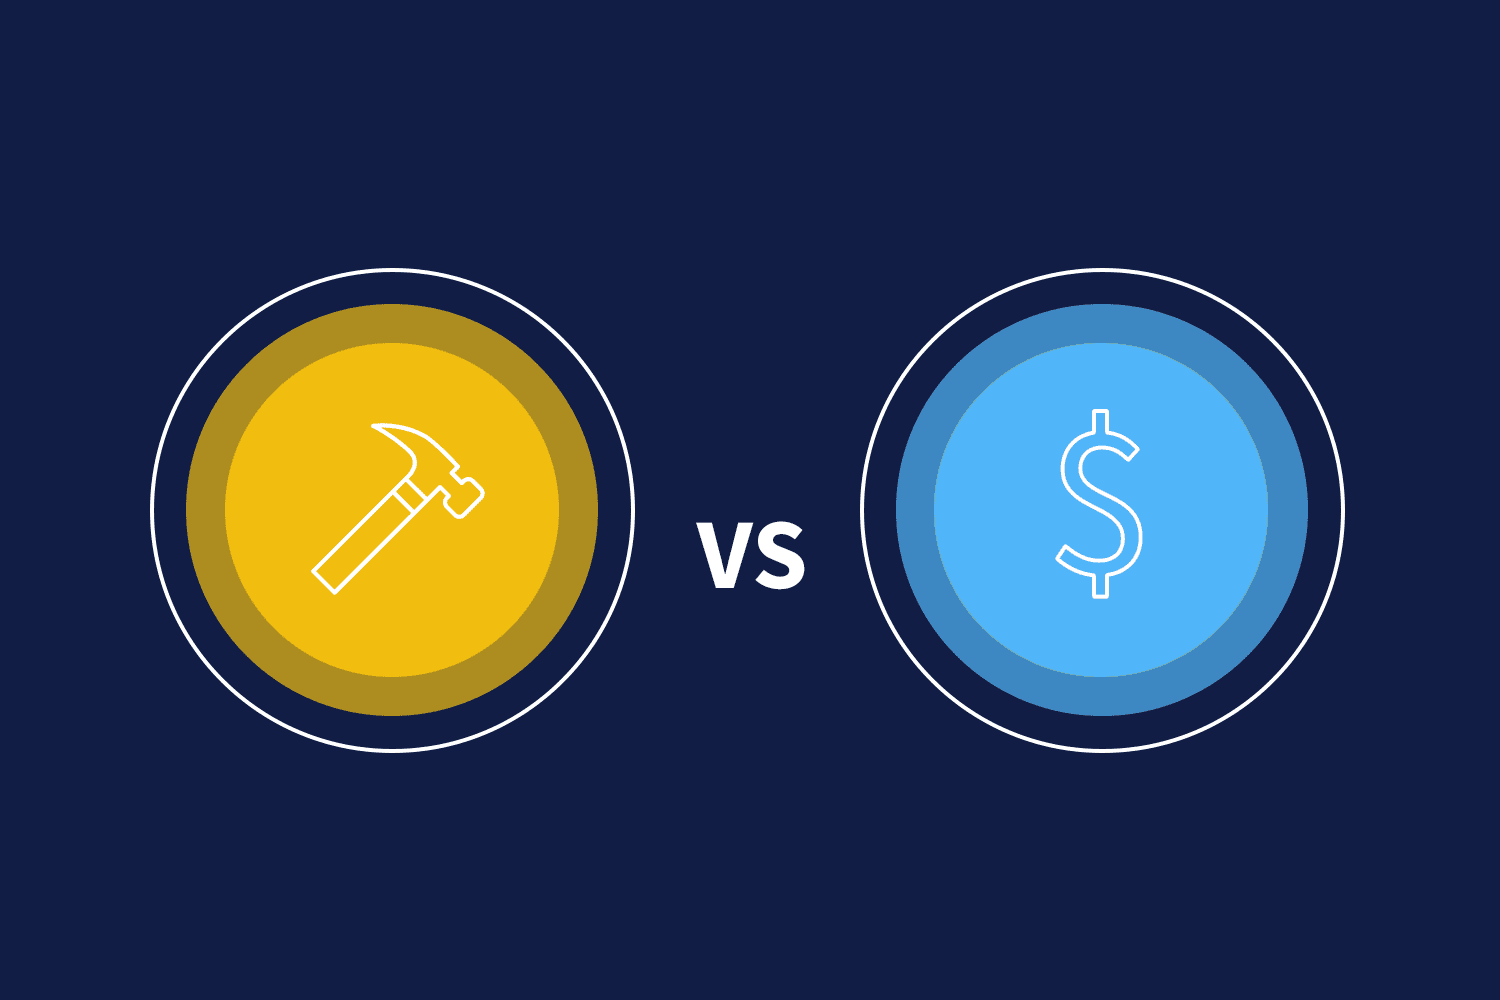 Hammer and dollar sign icons depicting the build vs buy martech debate